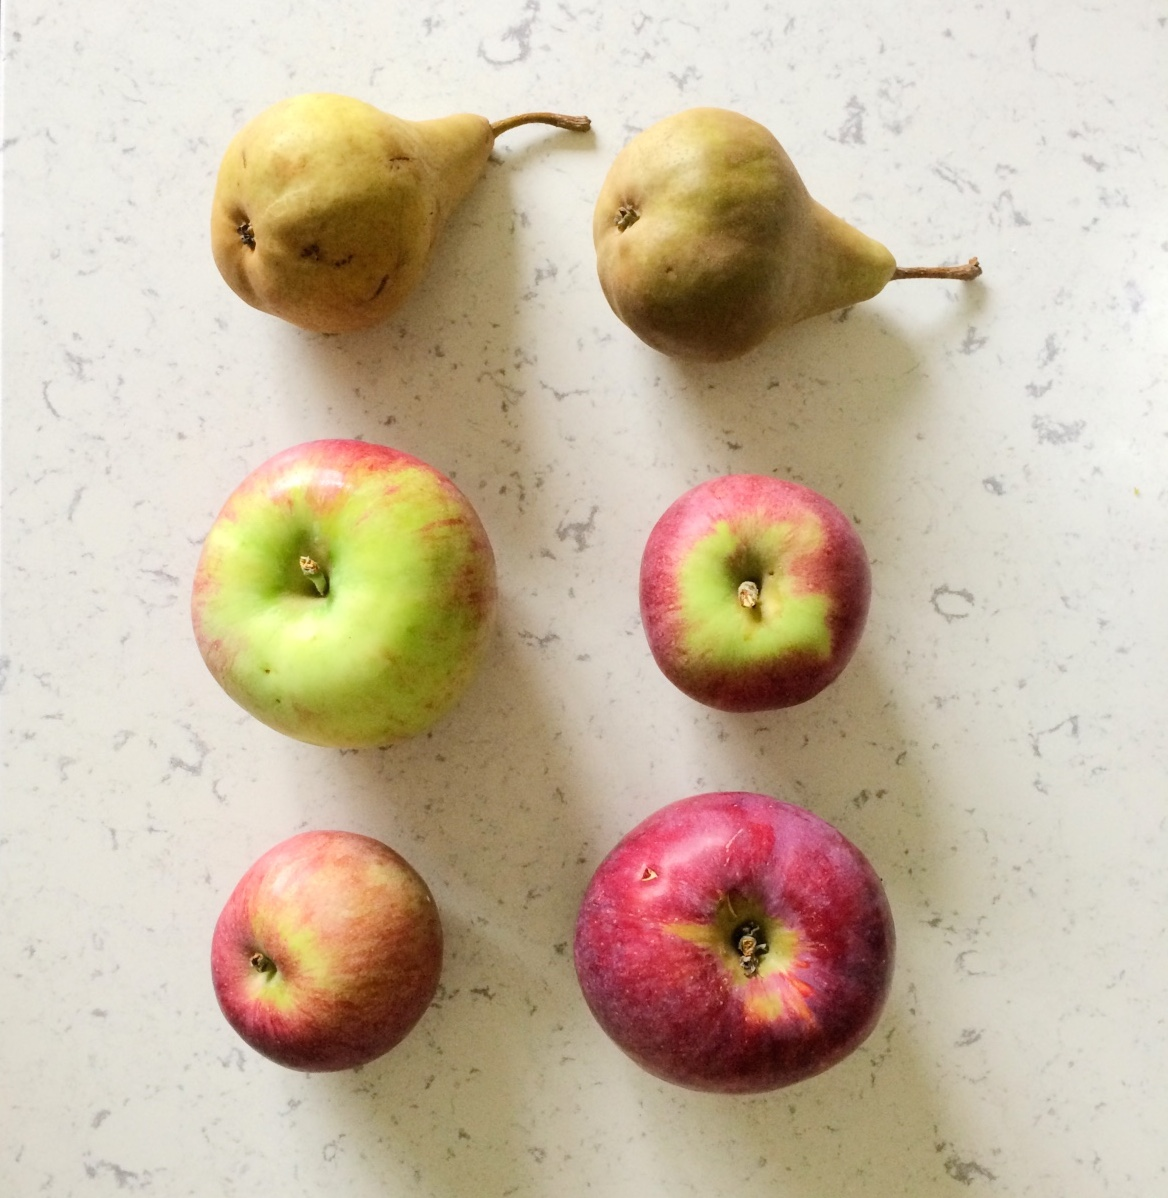 pears and apples come together to make the best pie